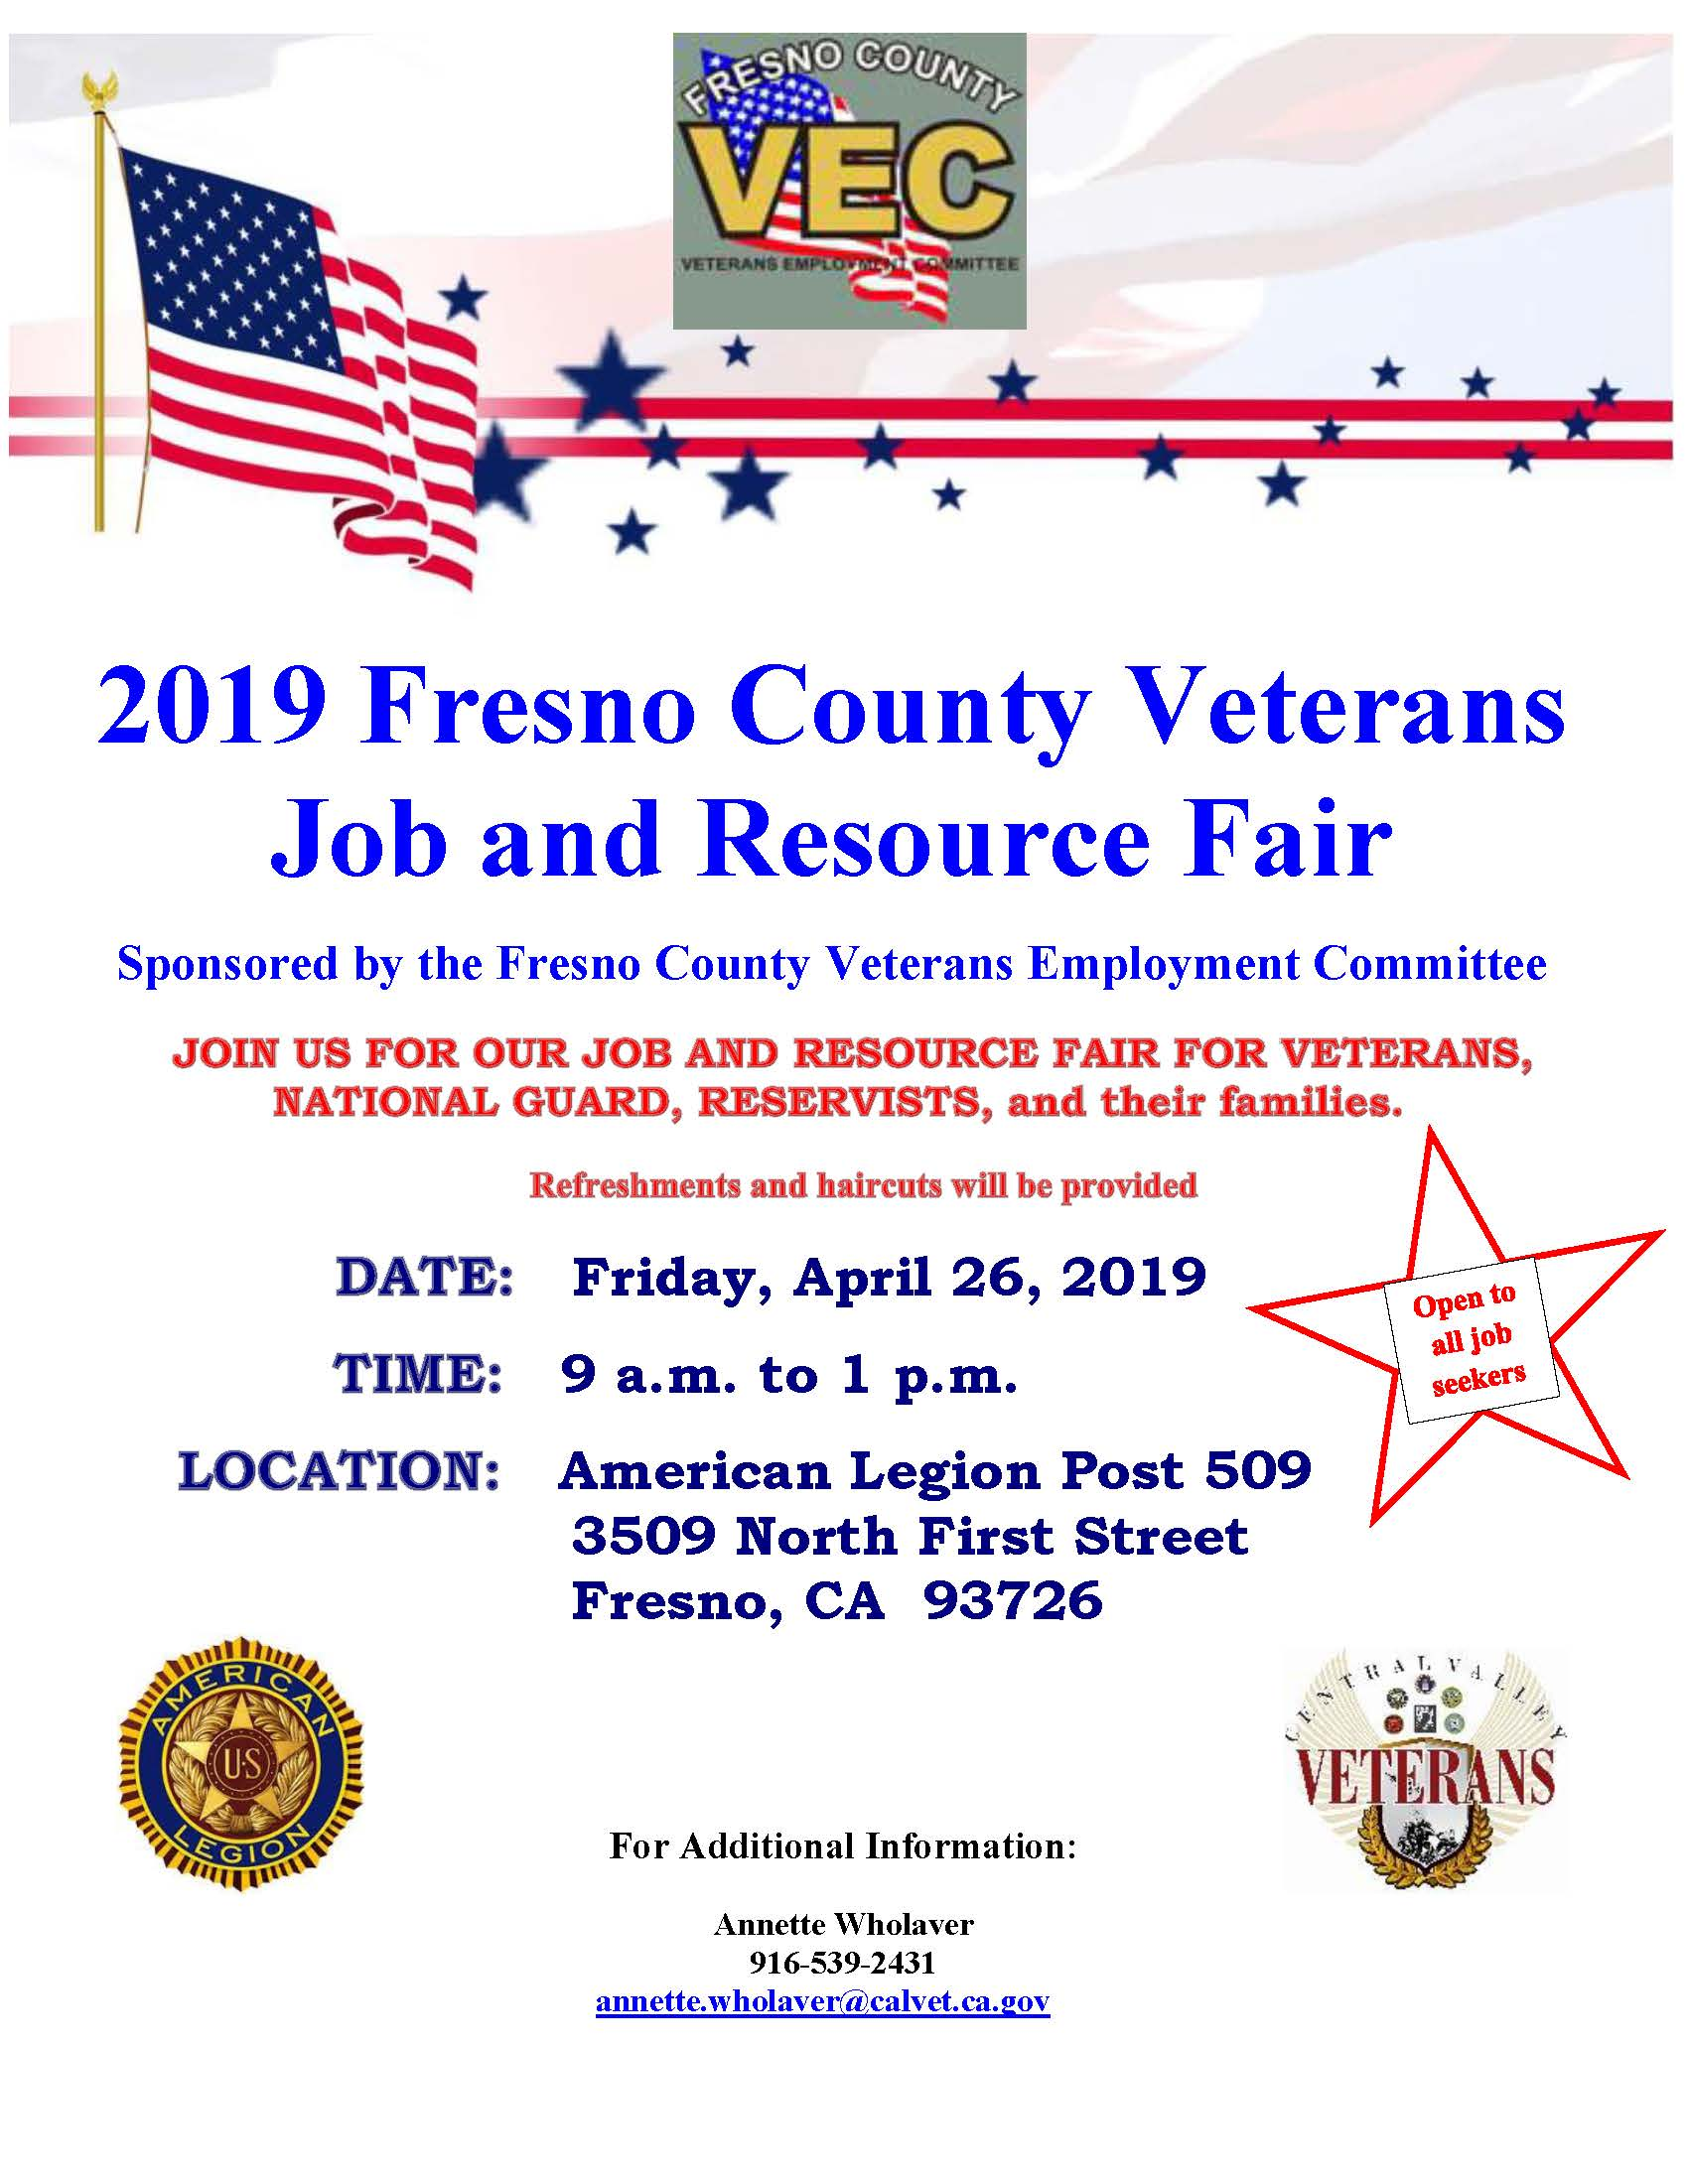 2019 VEC Job Fair Flyer